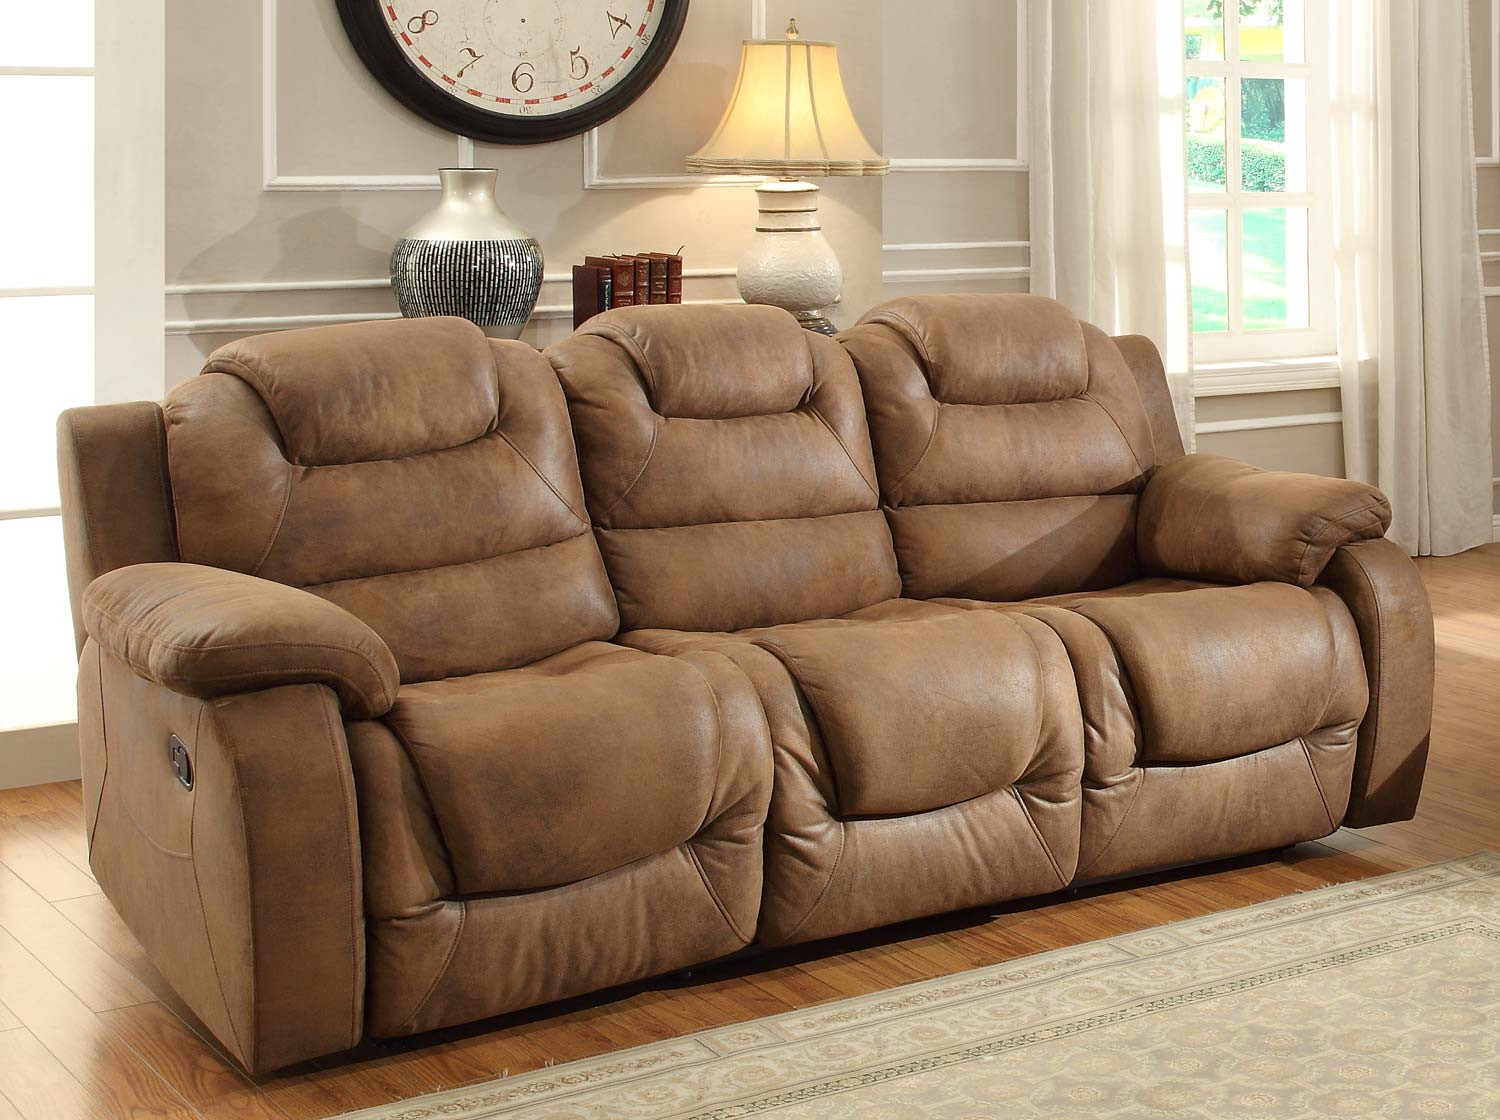 Homelegance Hoyt Double Recliner Sofa   Brown Microfiber